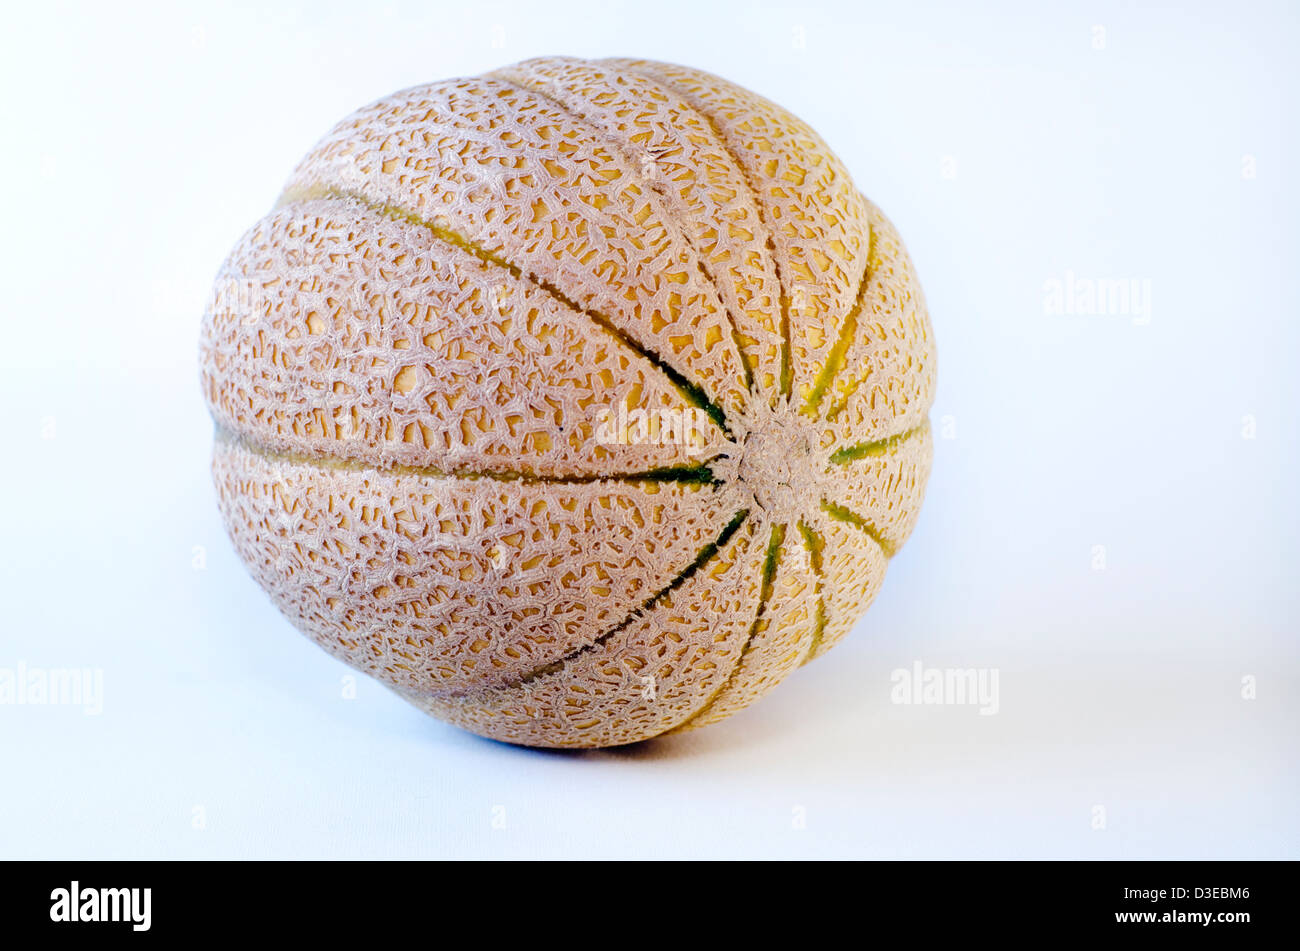 Melon cantaloup isolé sur un fond blanc. Photo Stock